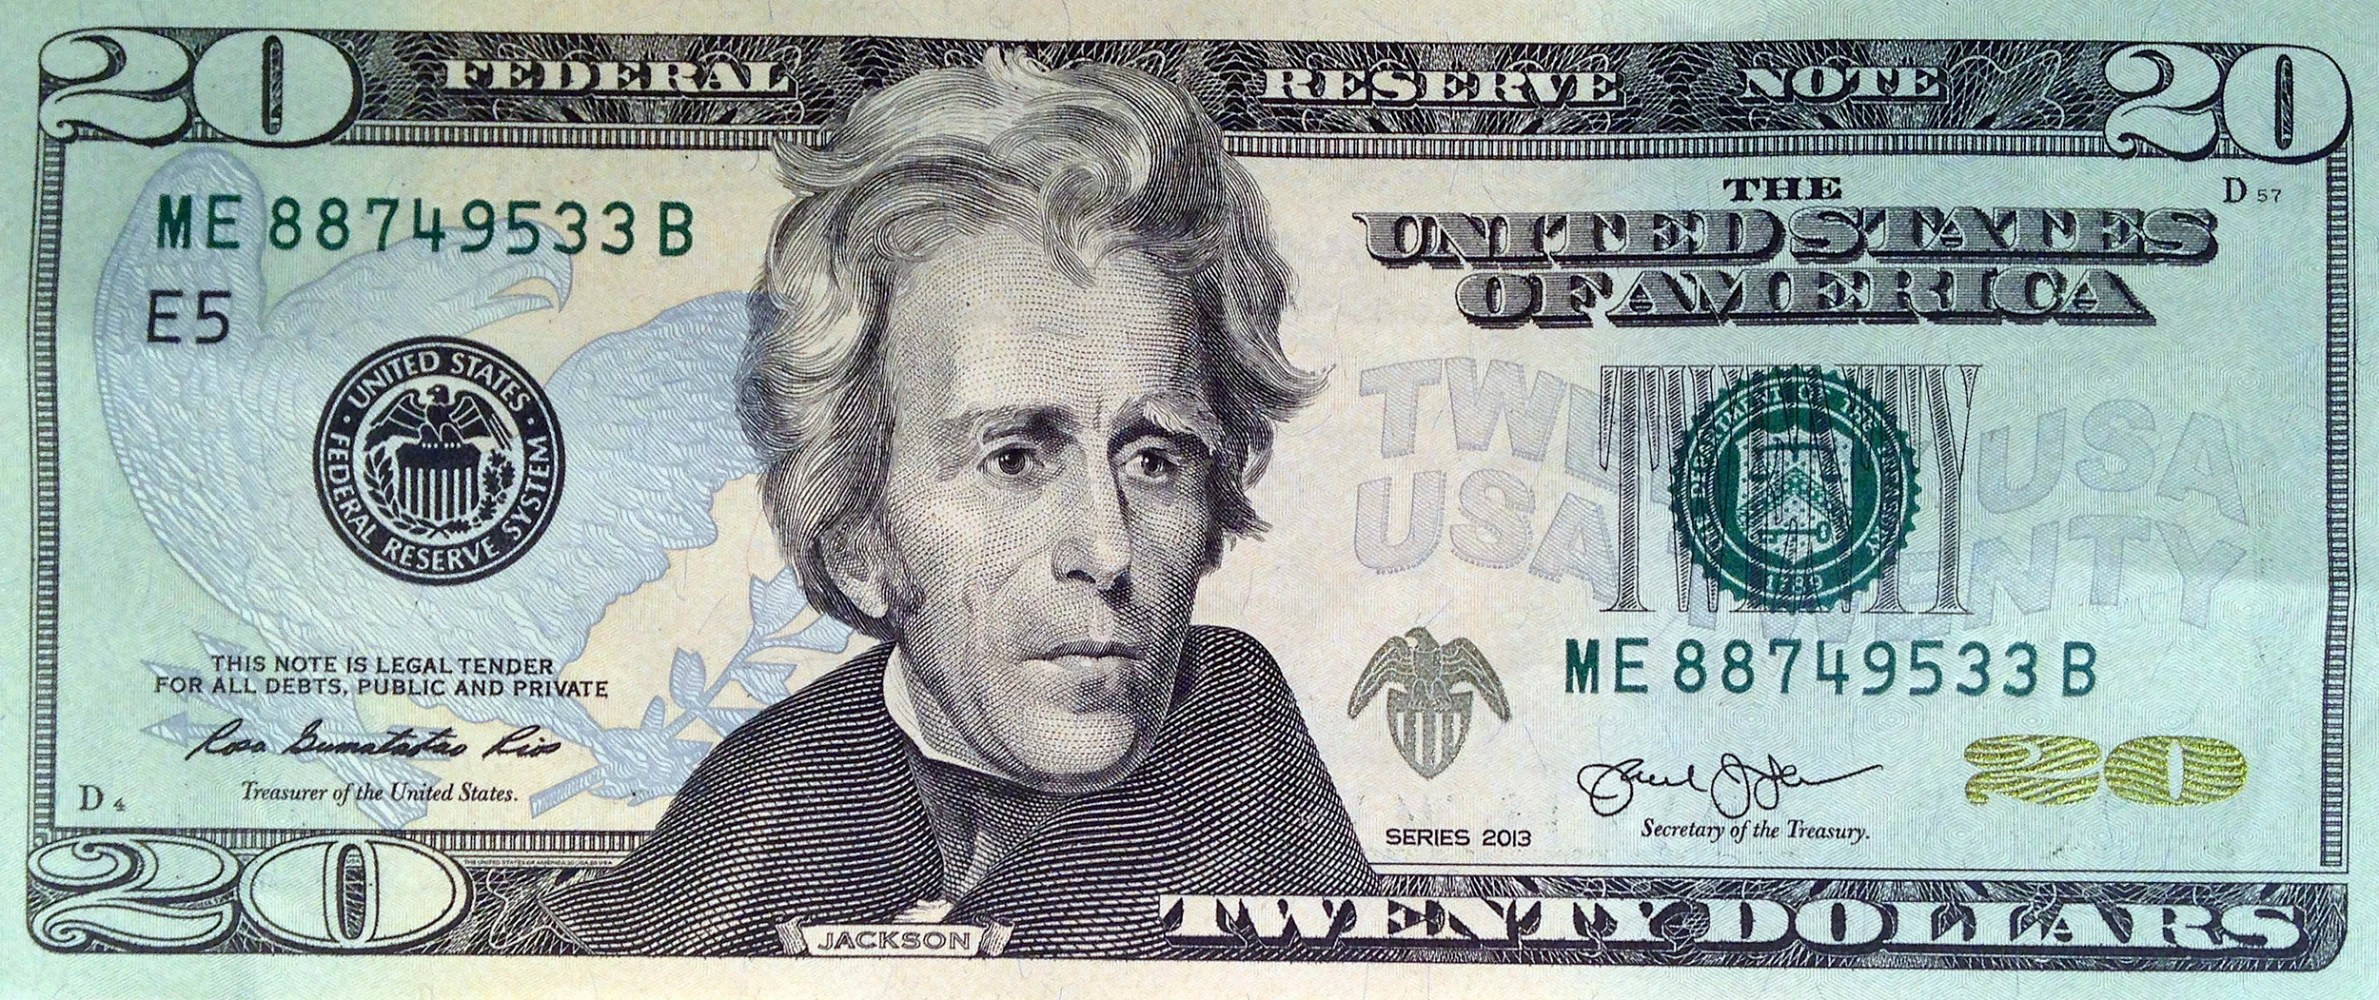 Andrew Jackson Got No Love From Broadway Or The Feds